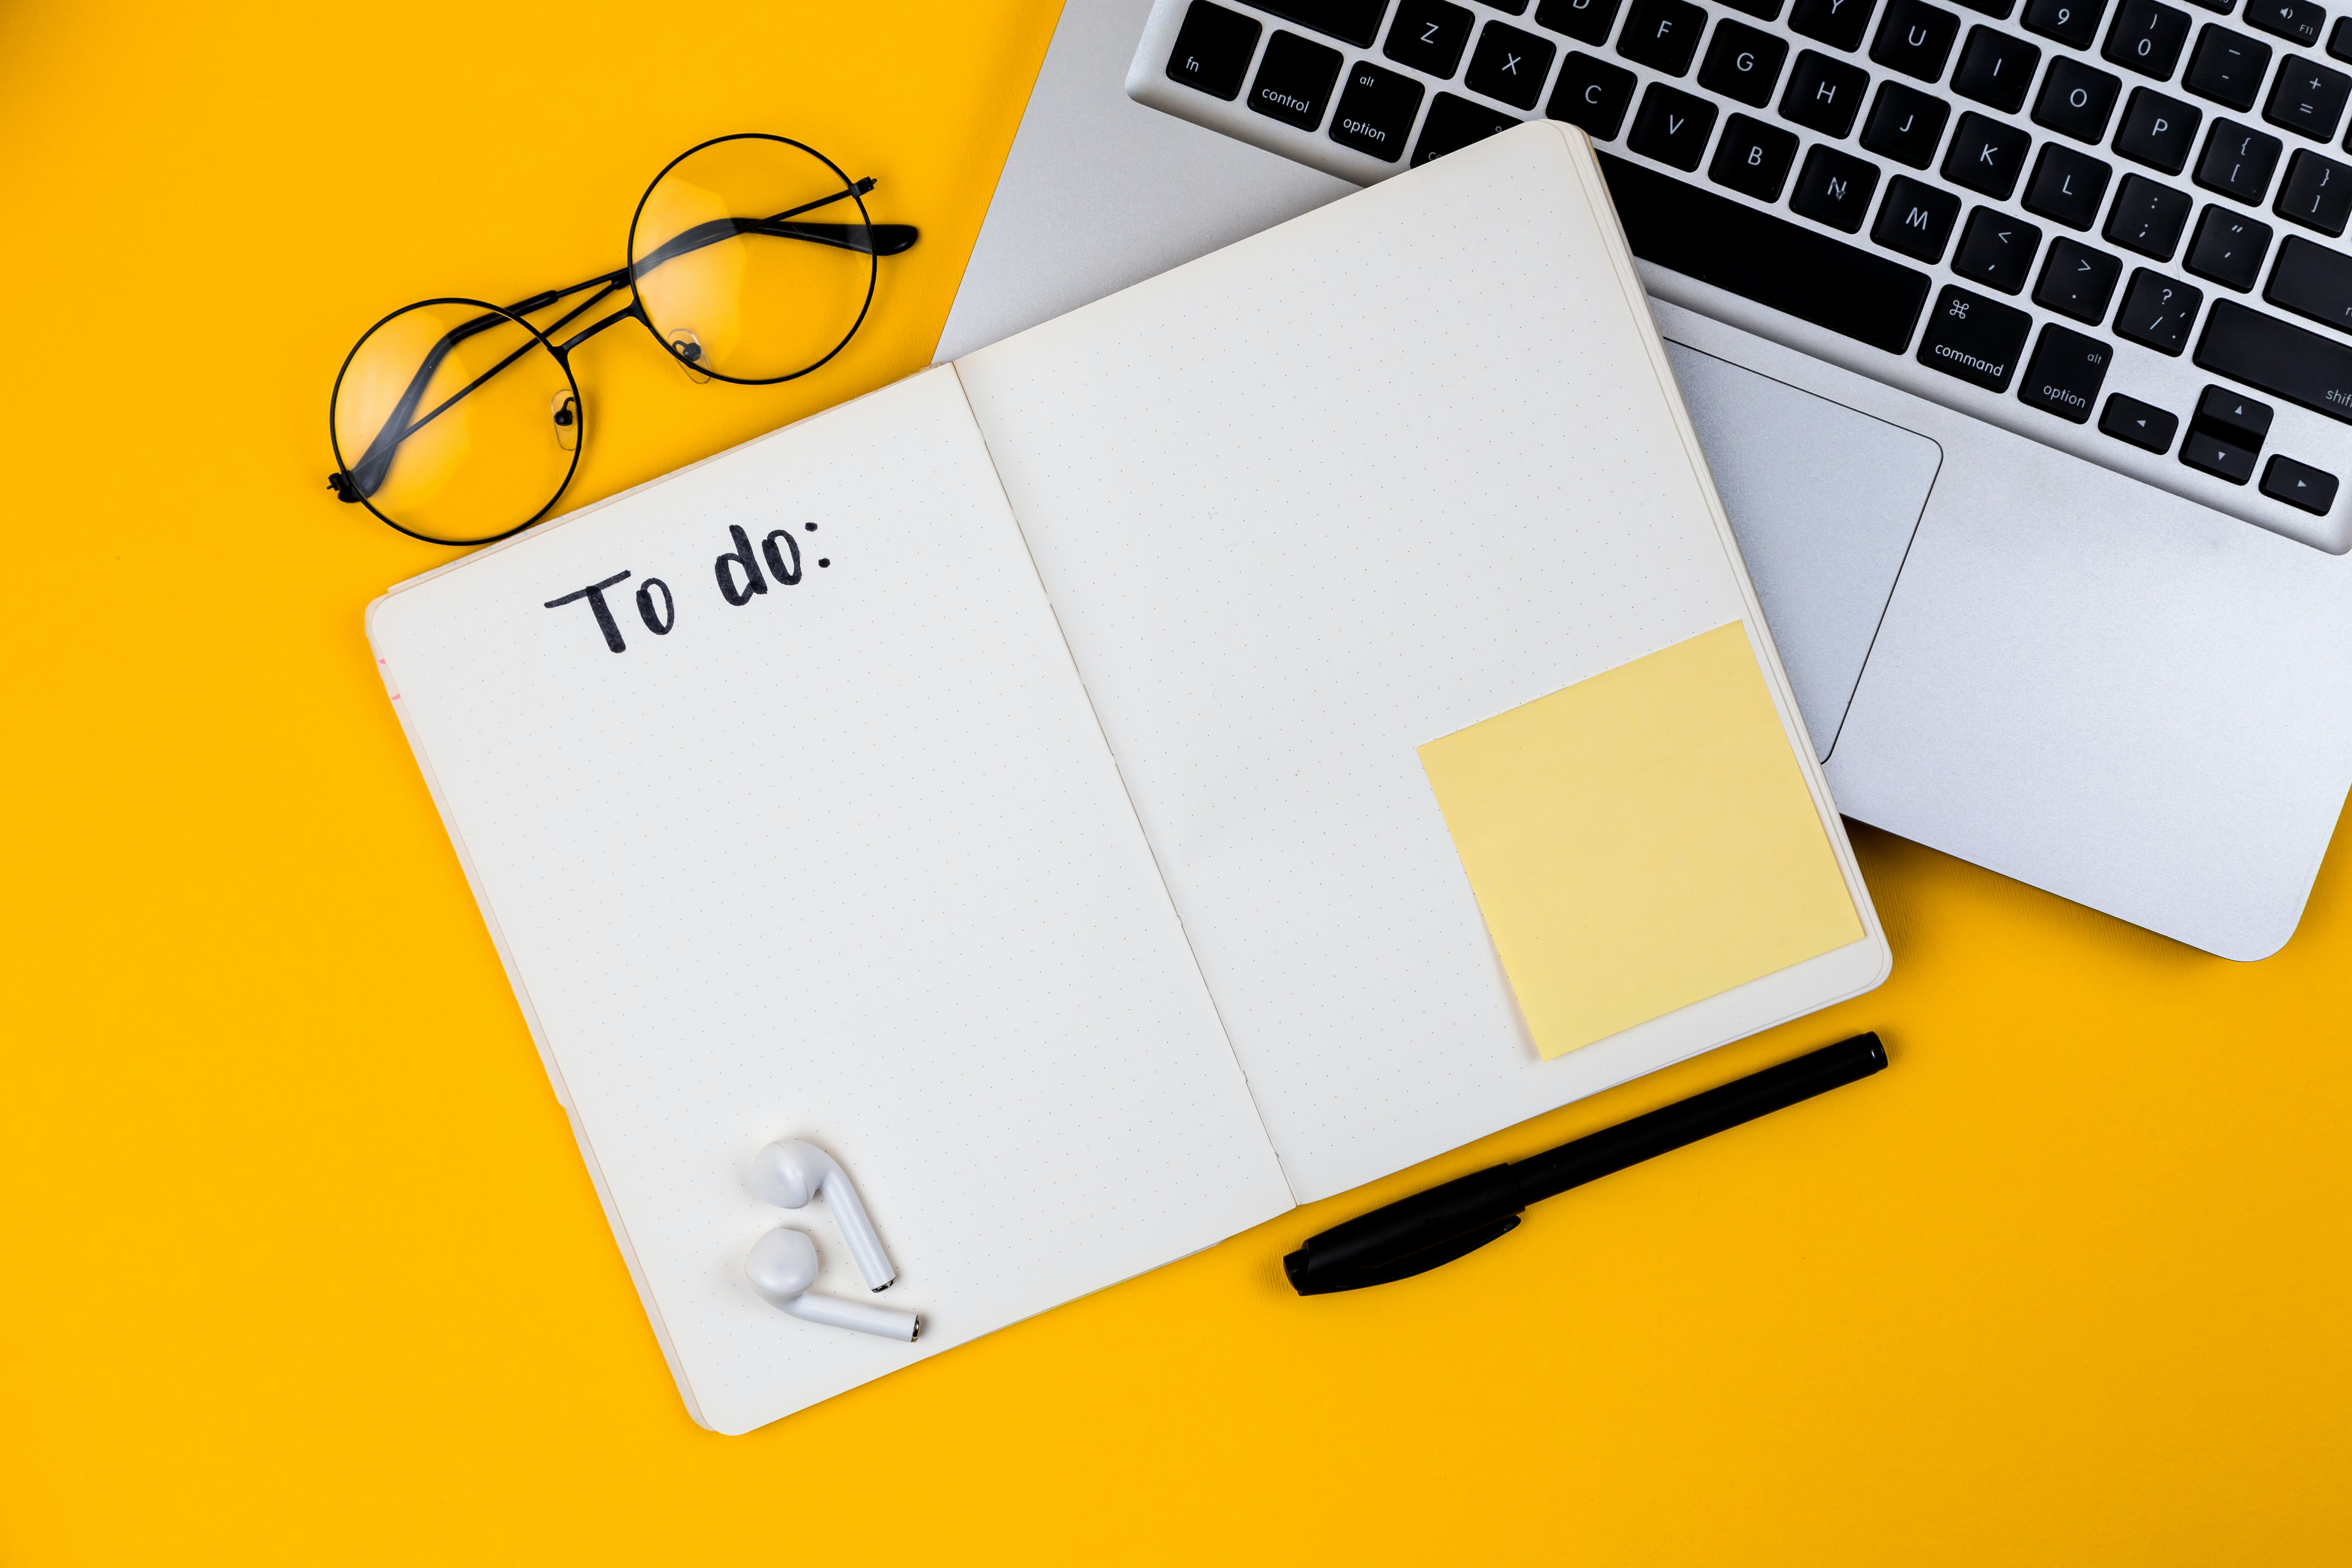 To do Notebook and laptop on yellow background